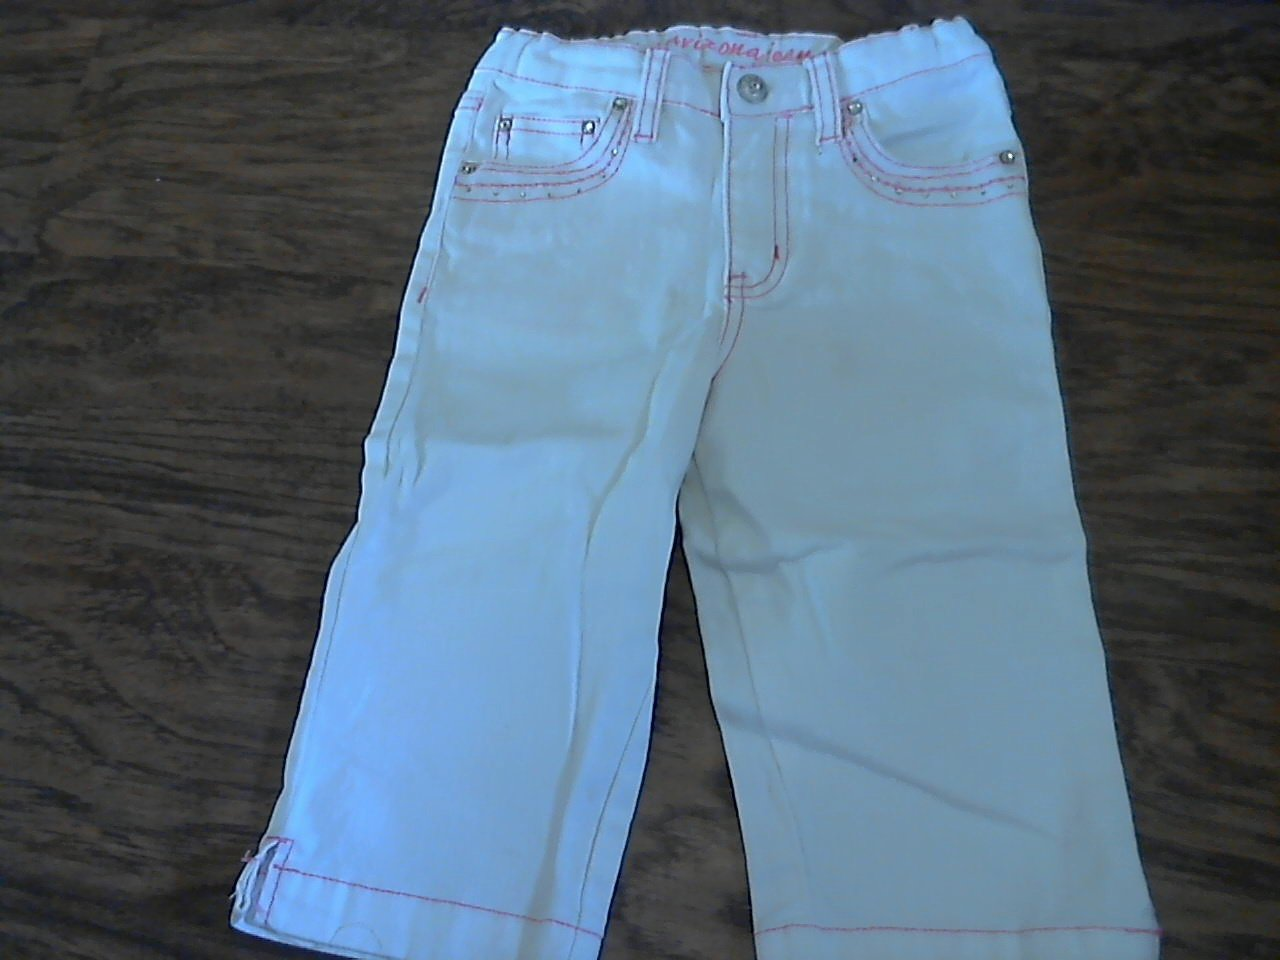 Arizona Jean girl's white jean pant size 6x/ slim